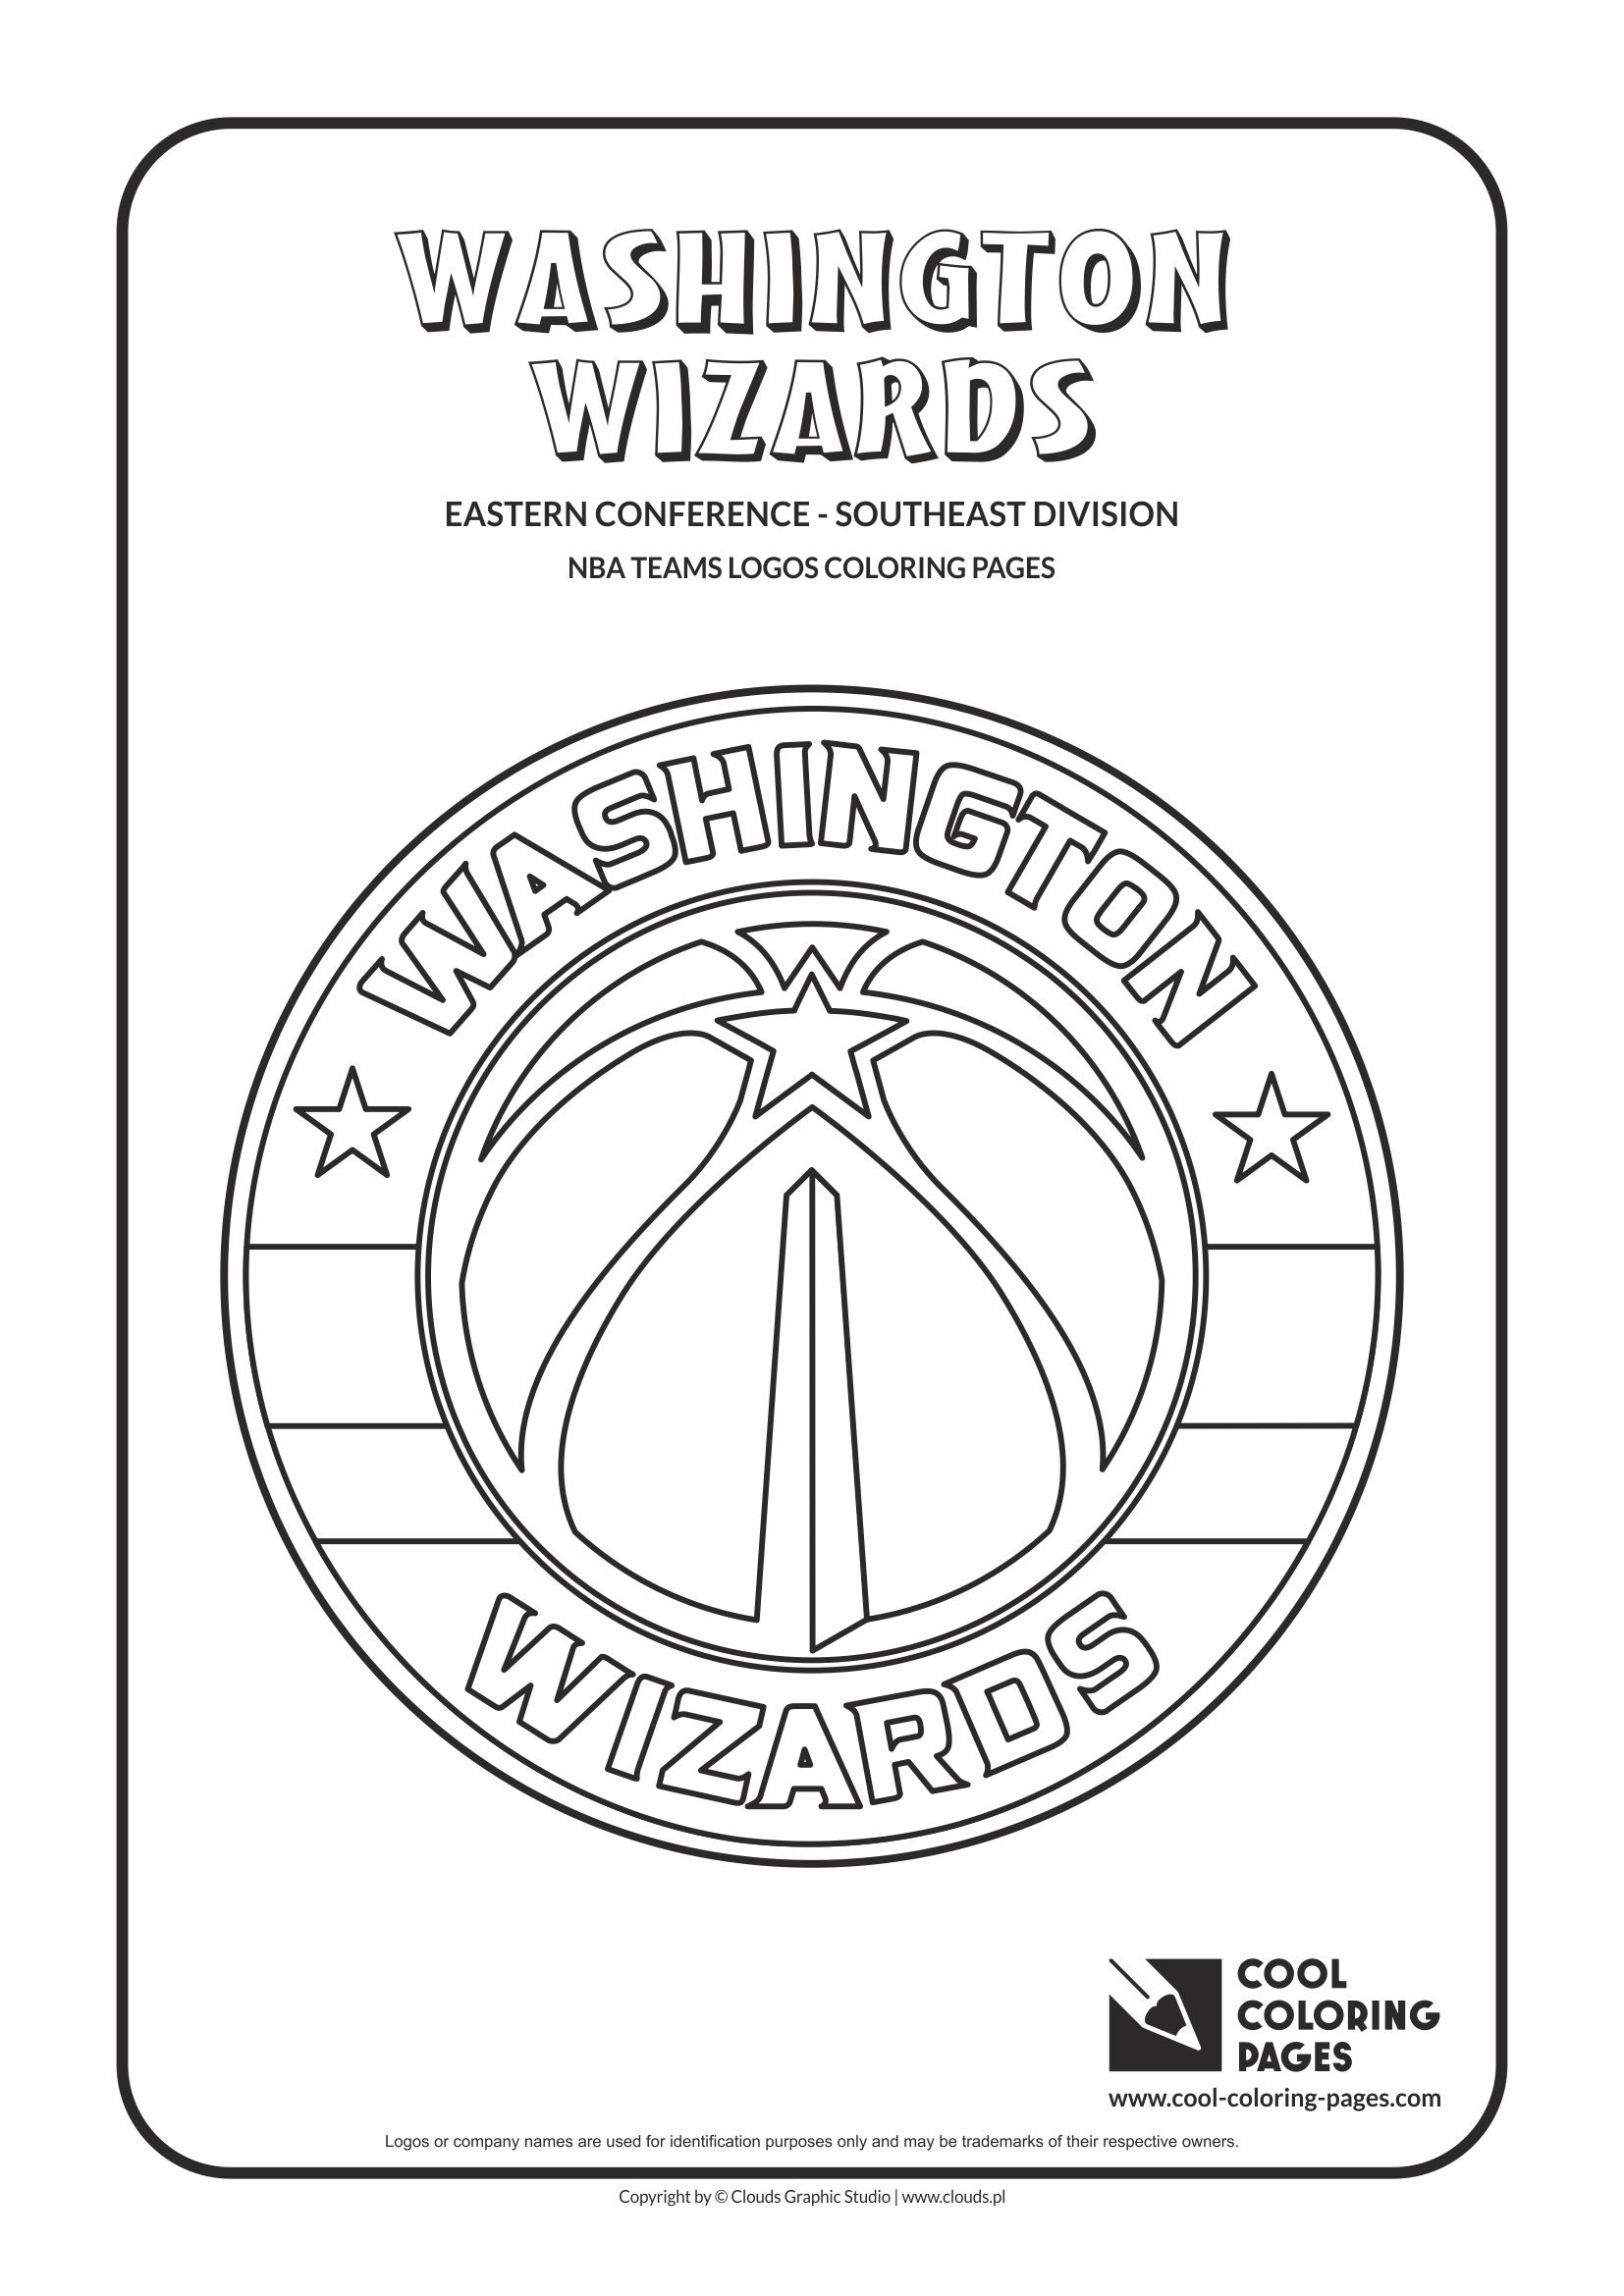 cool coloring pages nba basketball clubs logos easter conference southeast division washington